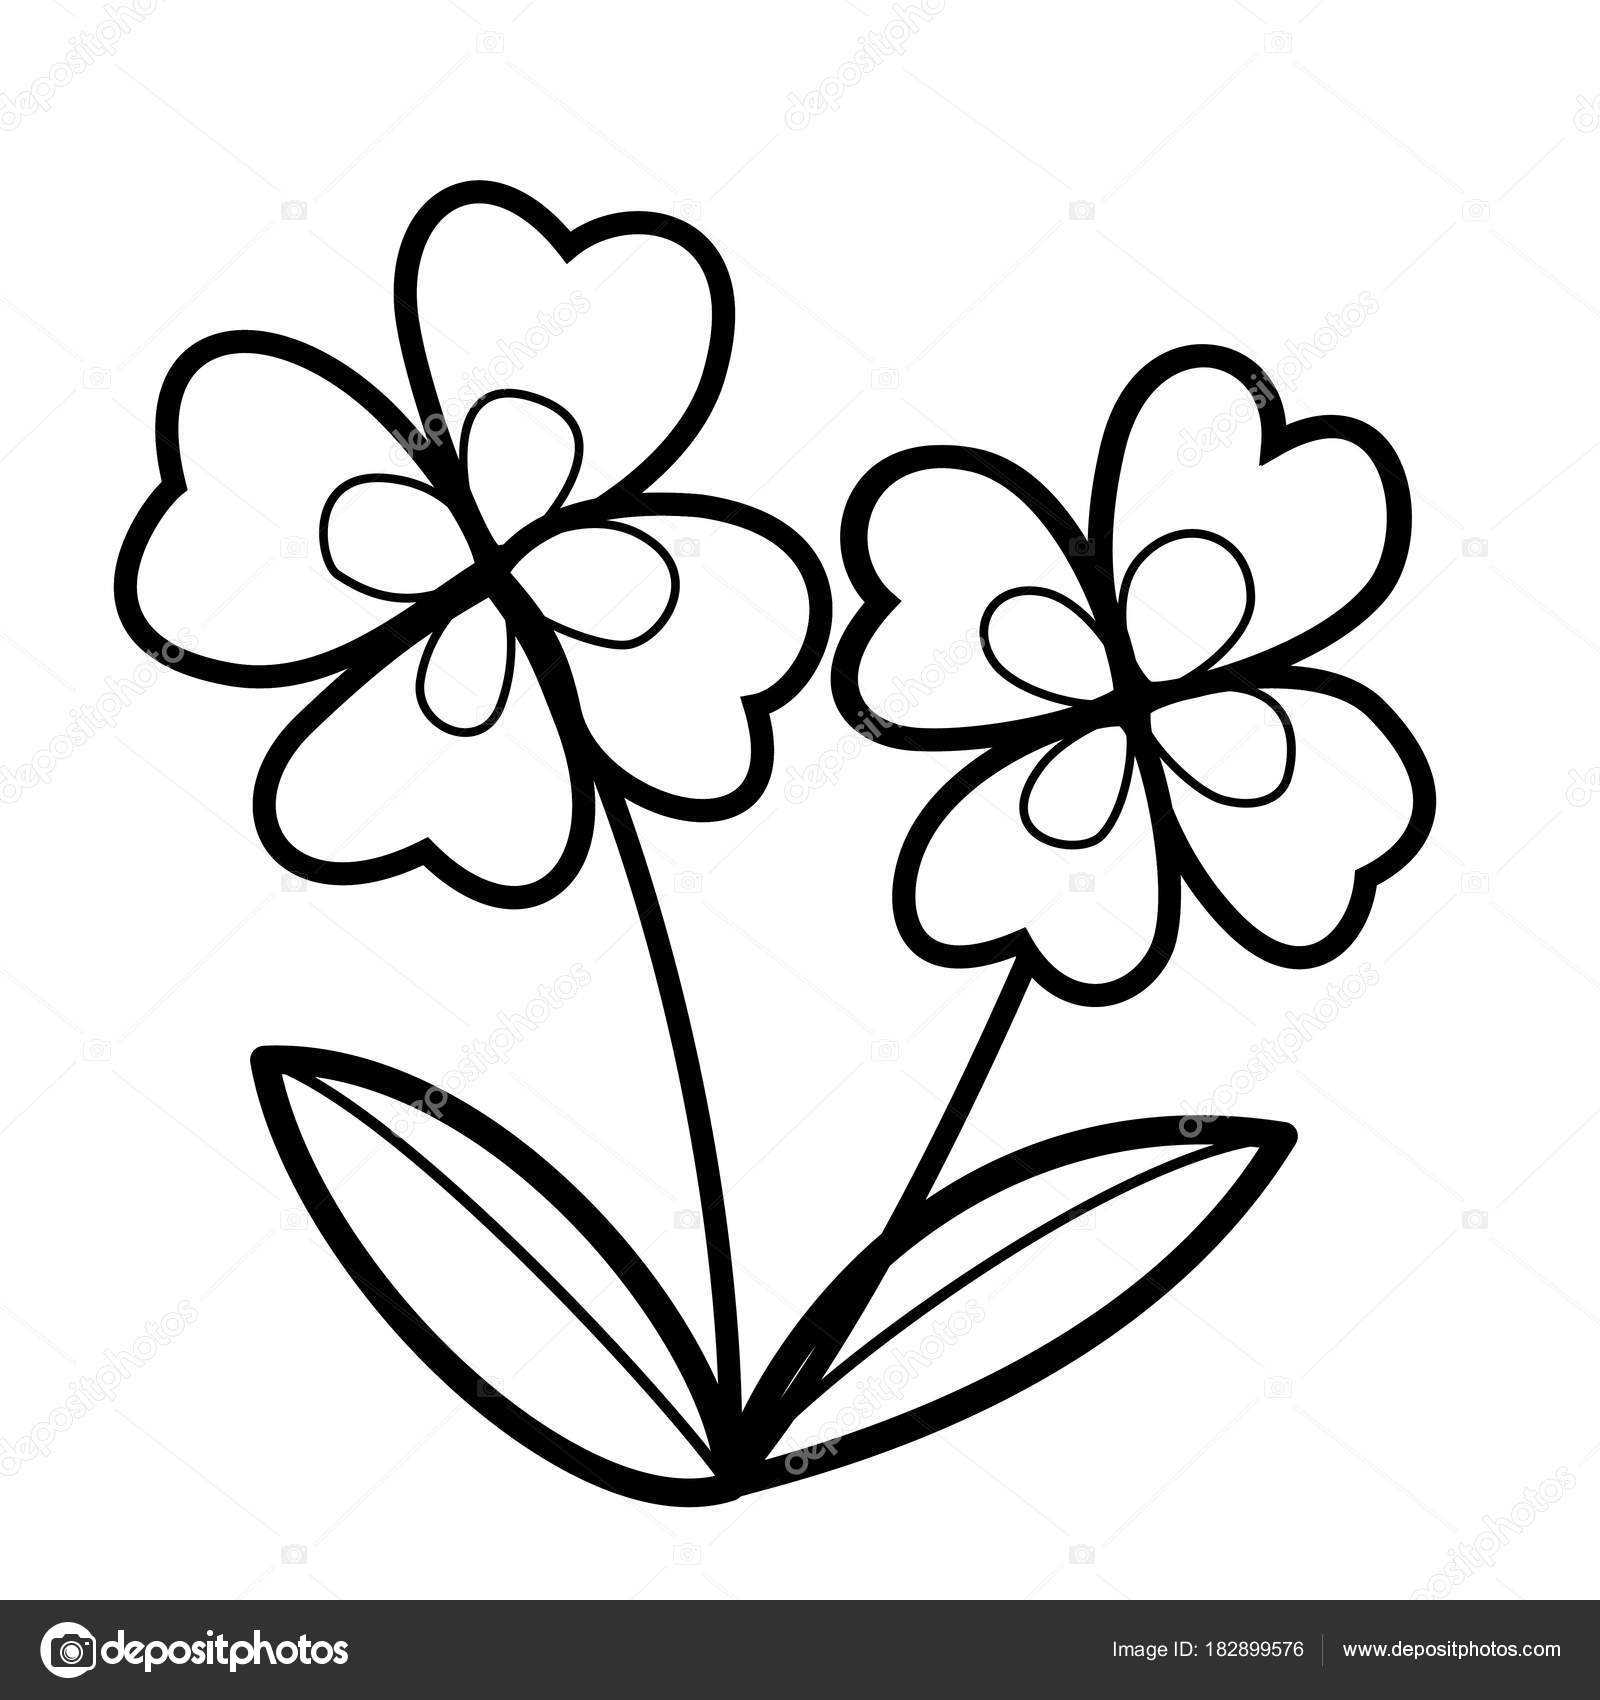 coloring flower cartoon images colouring pages cartoon flowers simple flower drawing coloring images flower cartoon